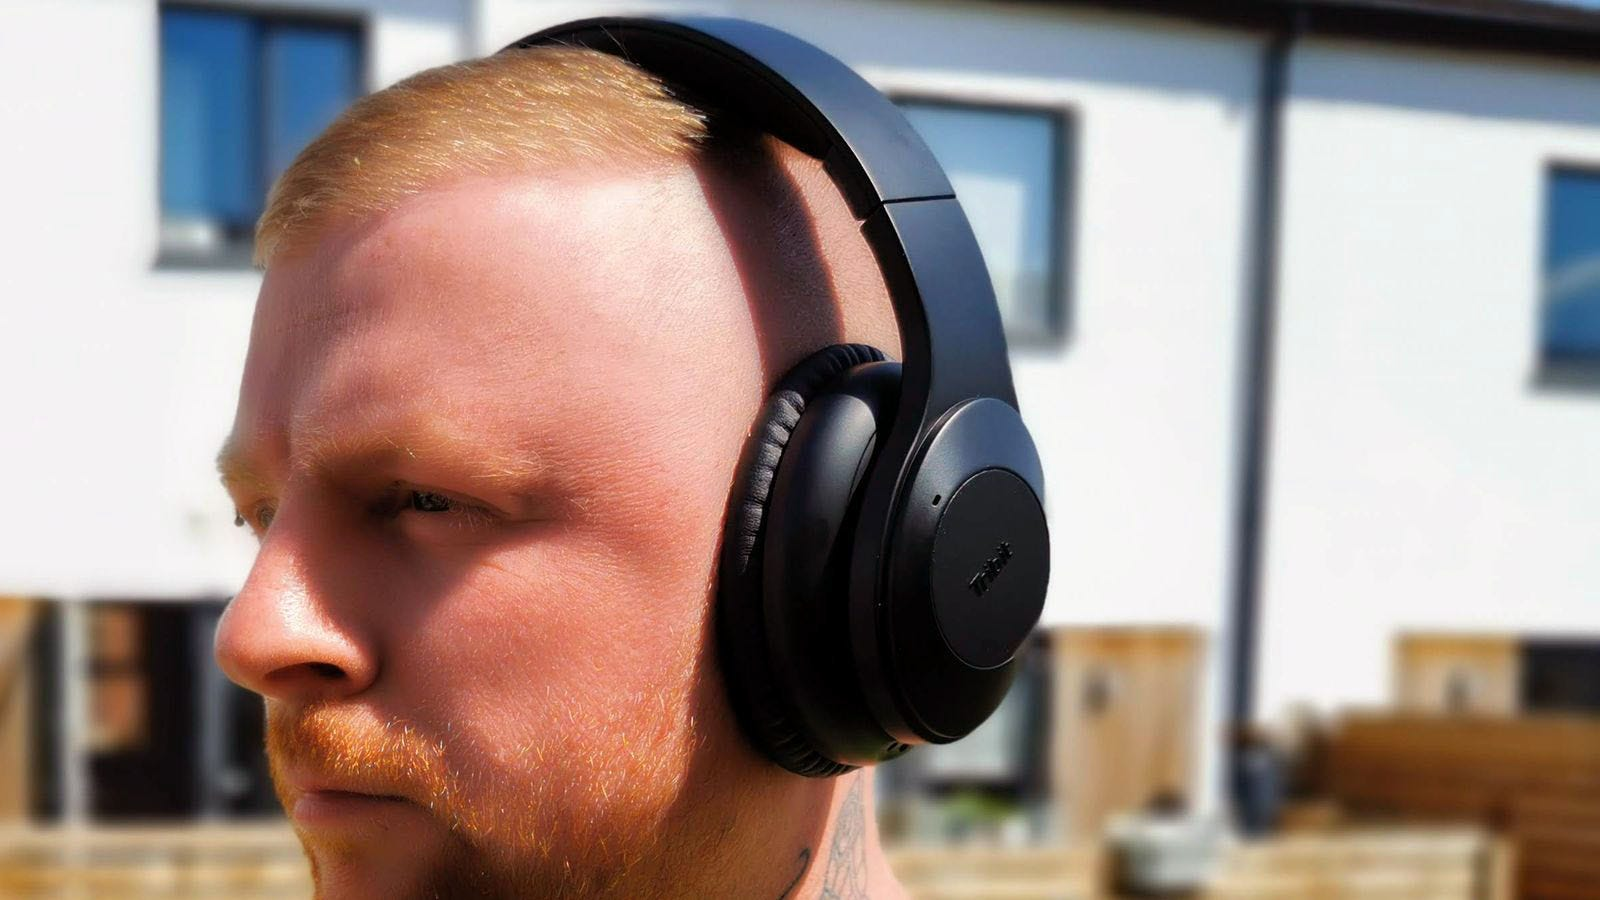 tribit quietplus in use over ears